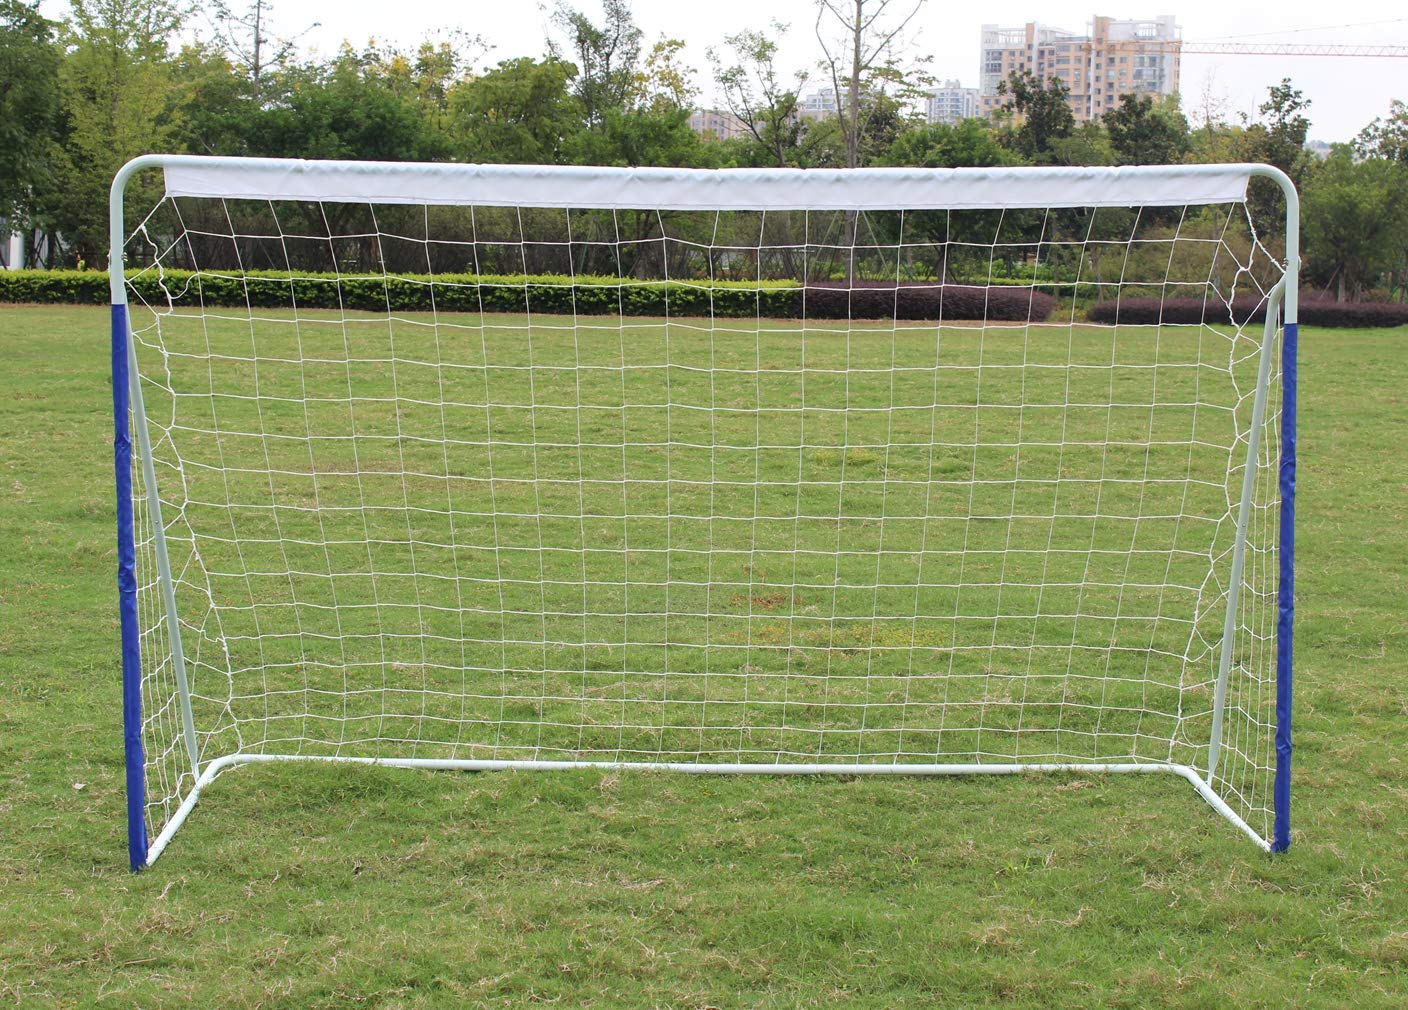 KLB Sport 8' x 5' Steel Soccer Goal - Portable Soccer Net with Carry Bag by KLB Sport (Image #2)